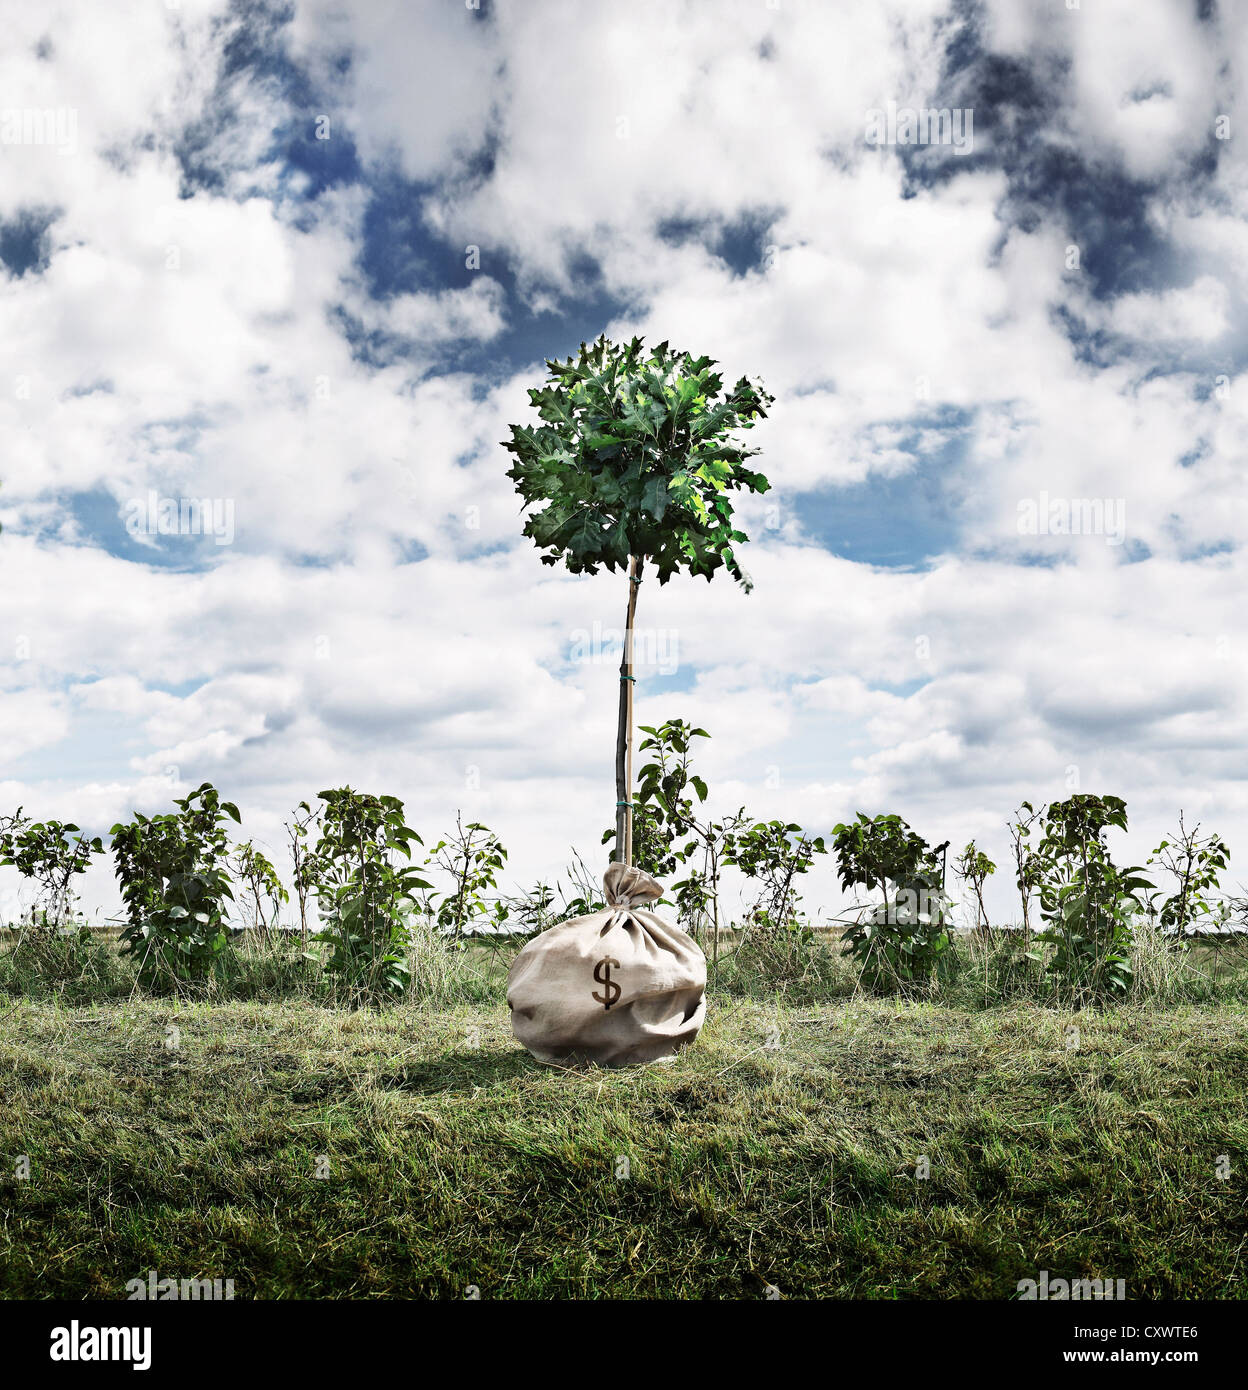 Tree growing out of money bag outdoors - Stock Image